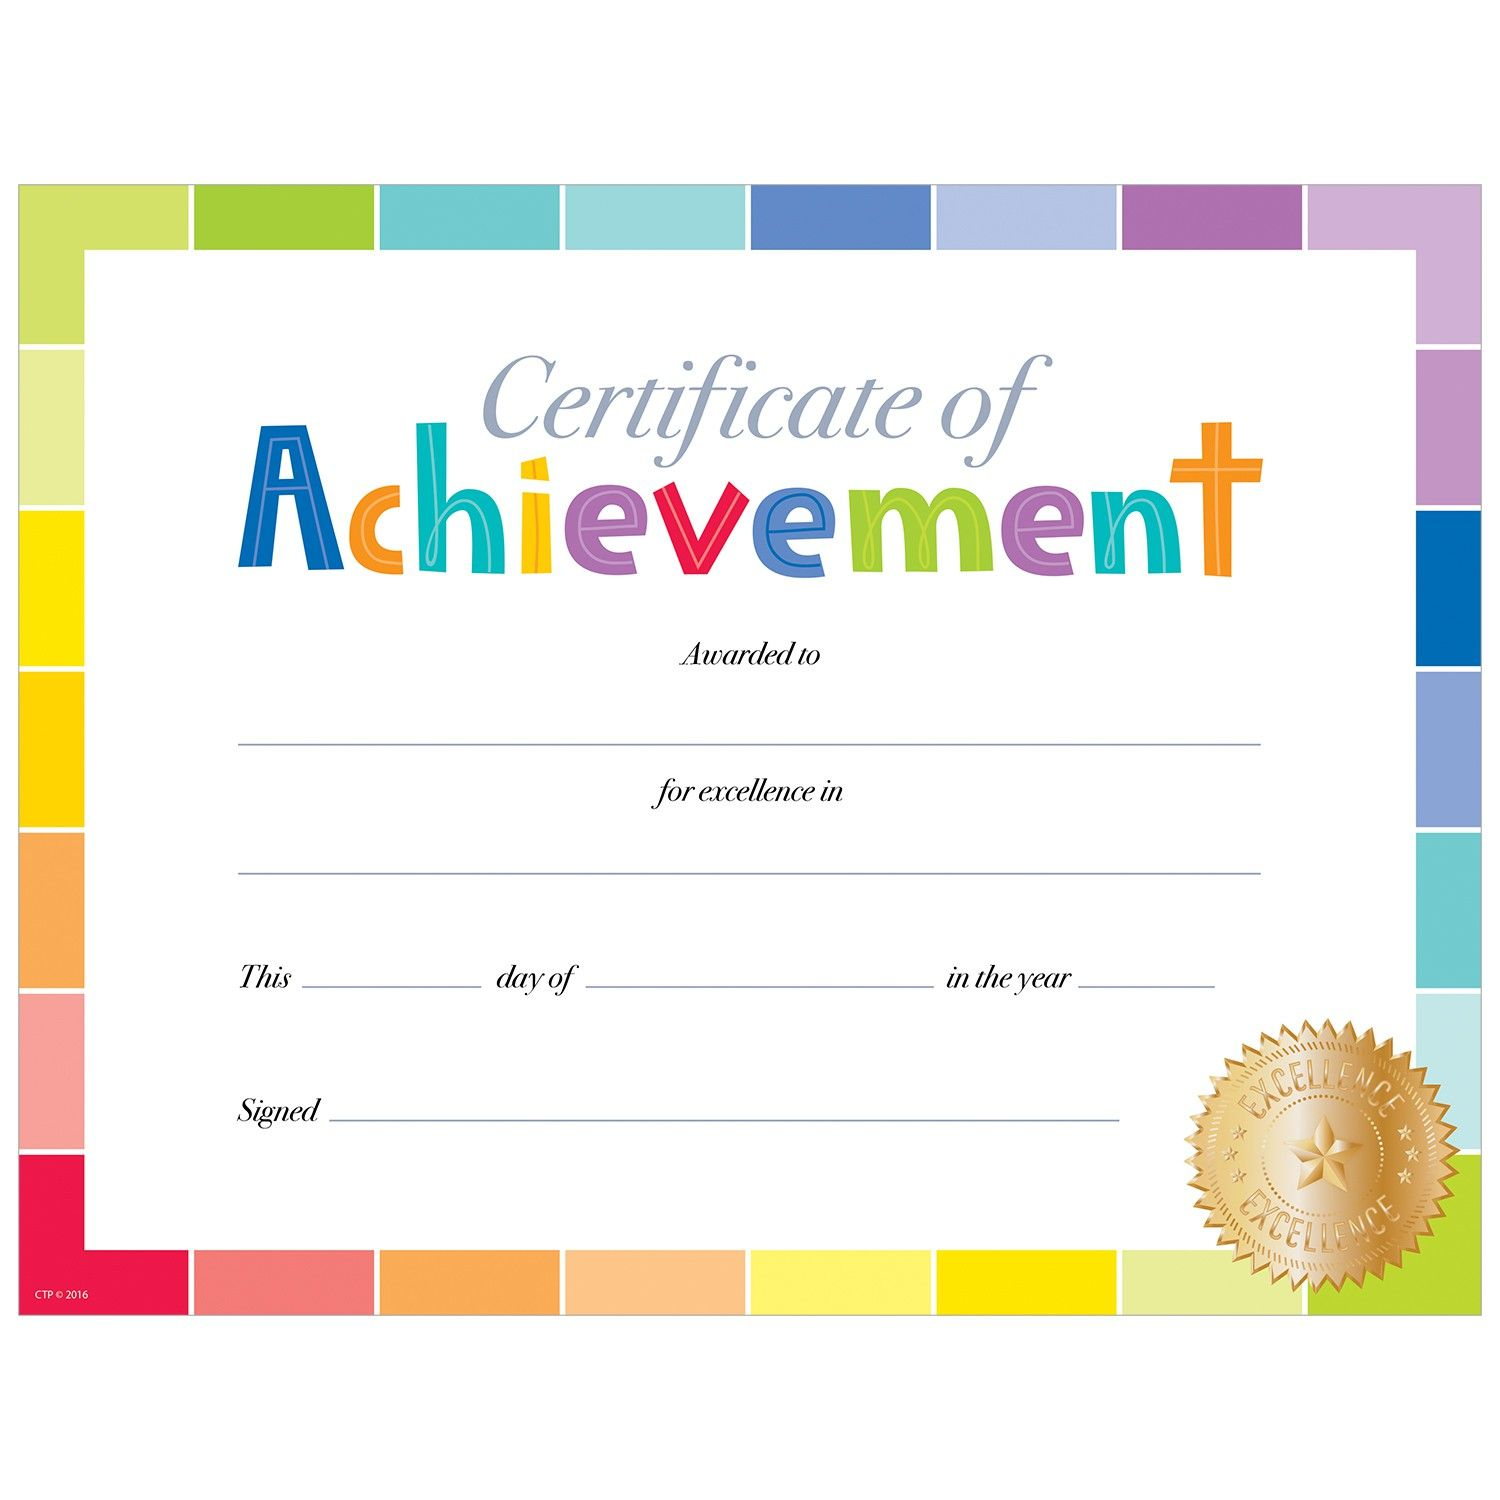 Award Certificates Kids Art Google Search Scmac Certificates